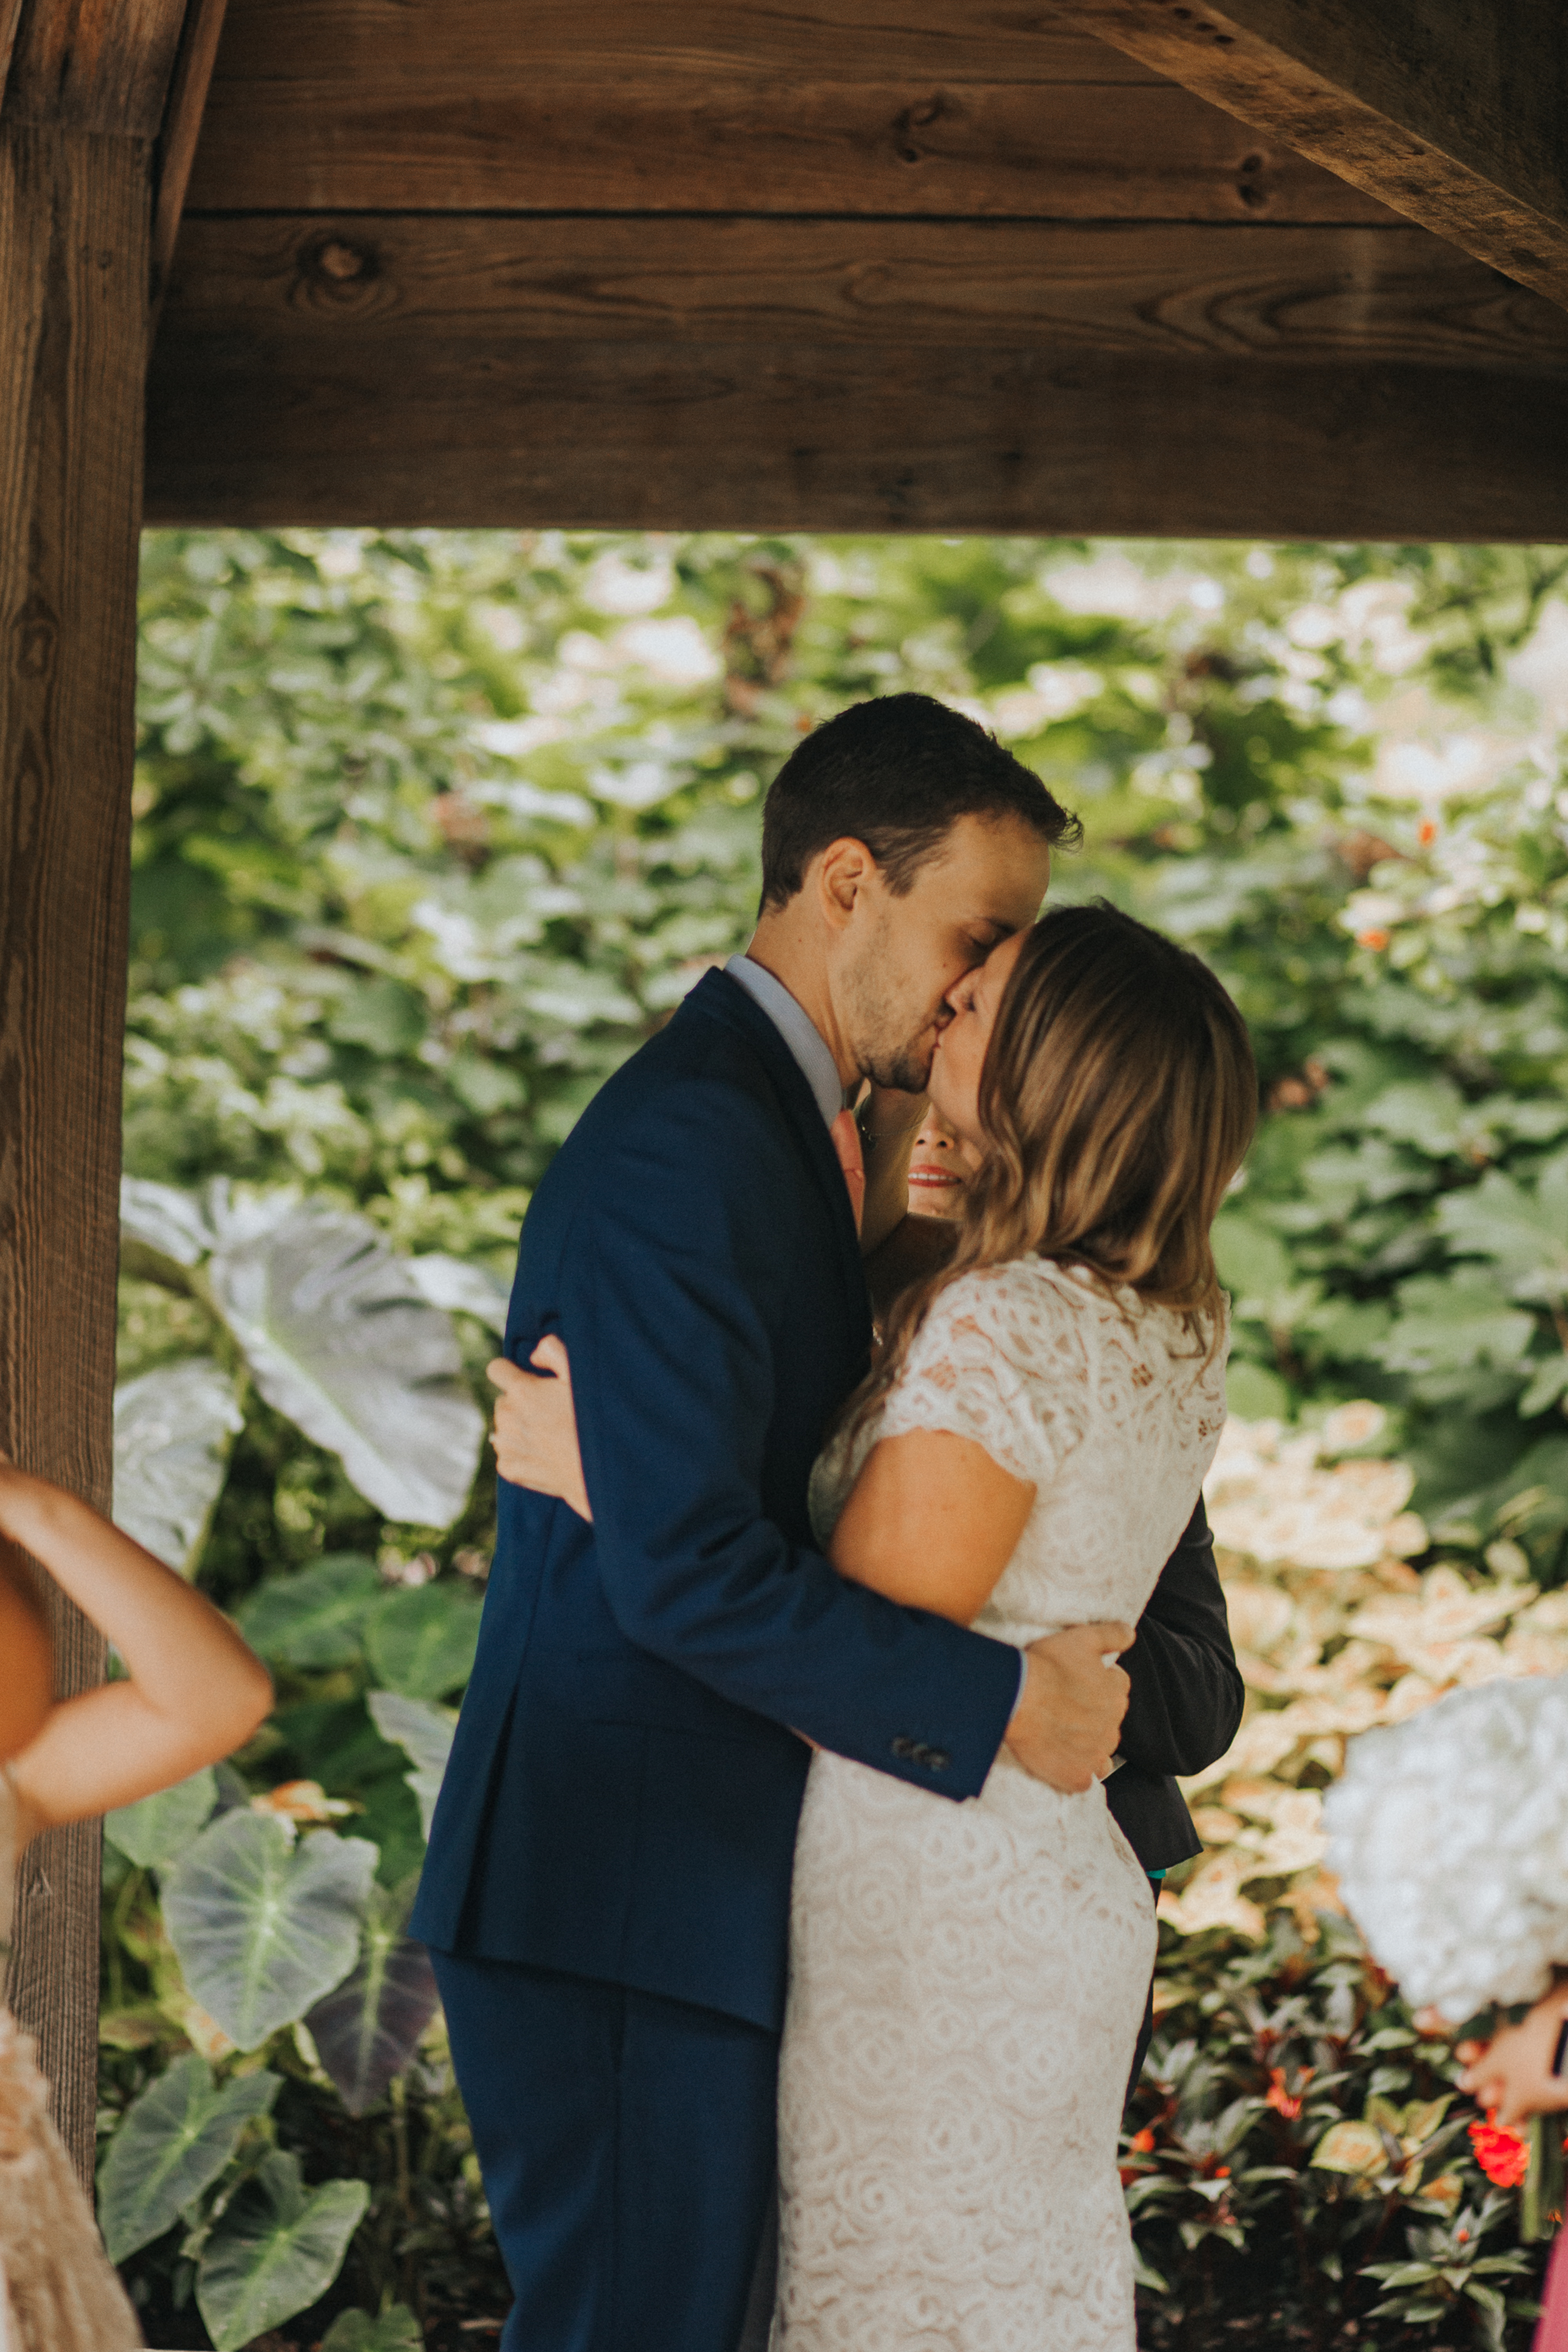 Eden Park Elopement in Cincinnati Photography by Bare Moments Photographya